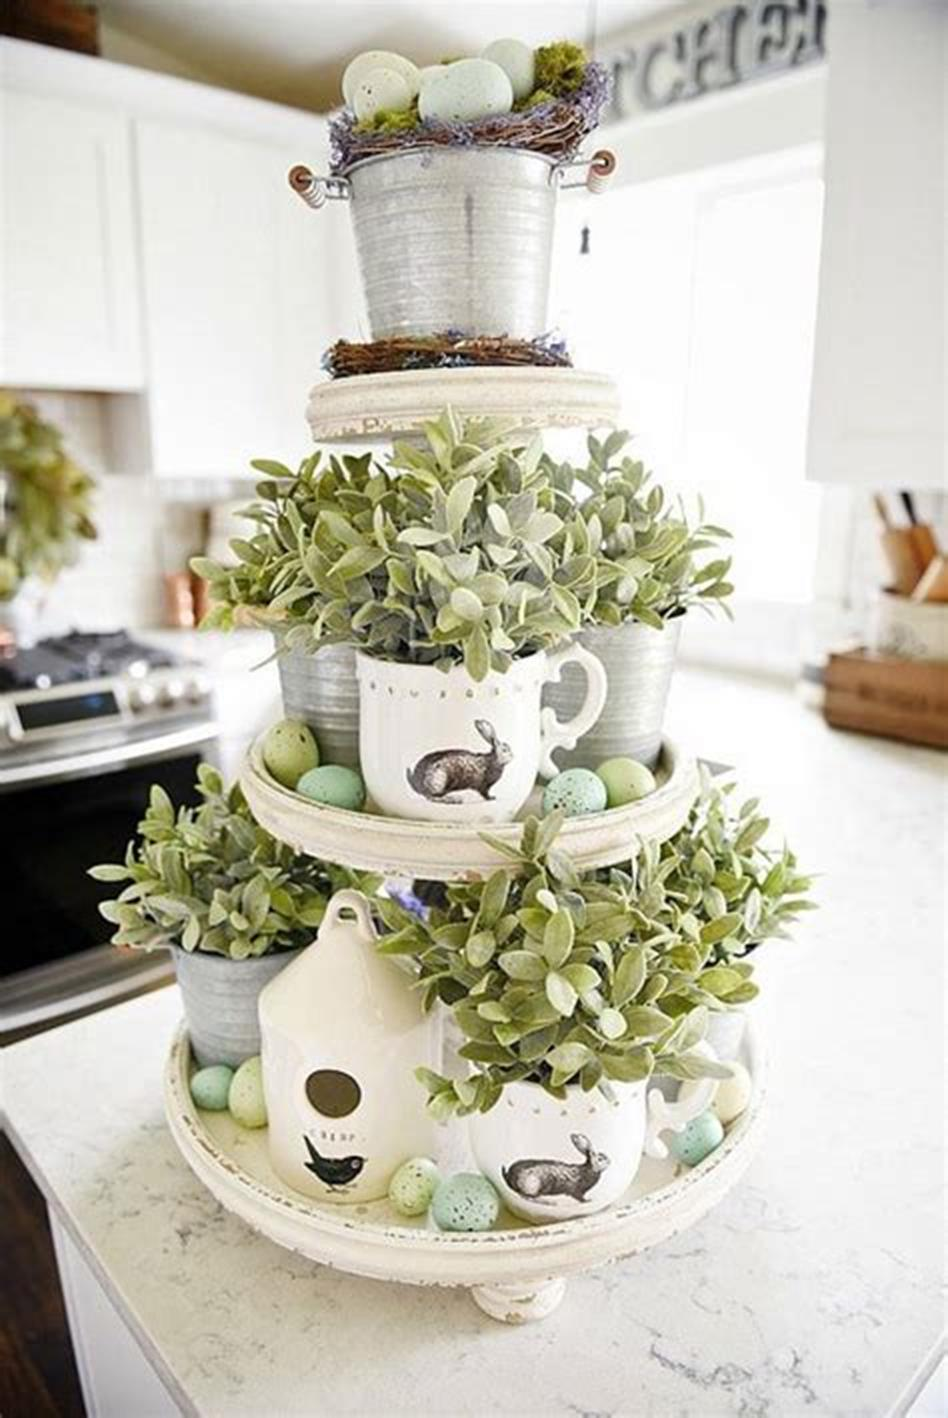 37 Beautiful Farmhouse Spring Decorating Ideas On a Budget for 2019 21